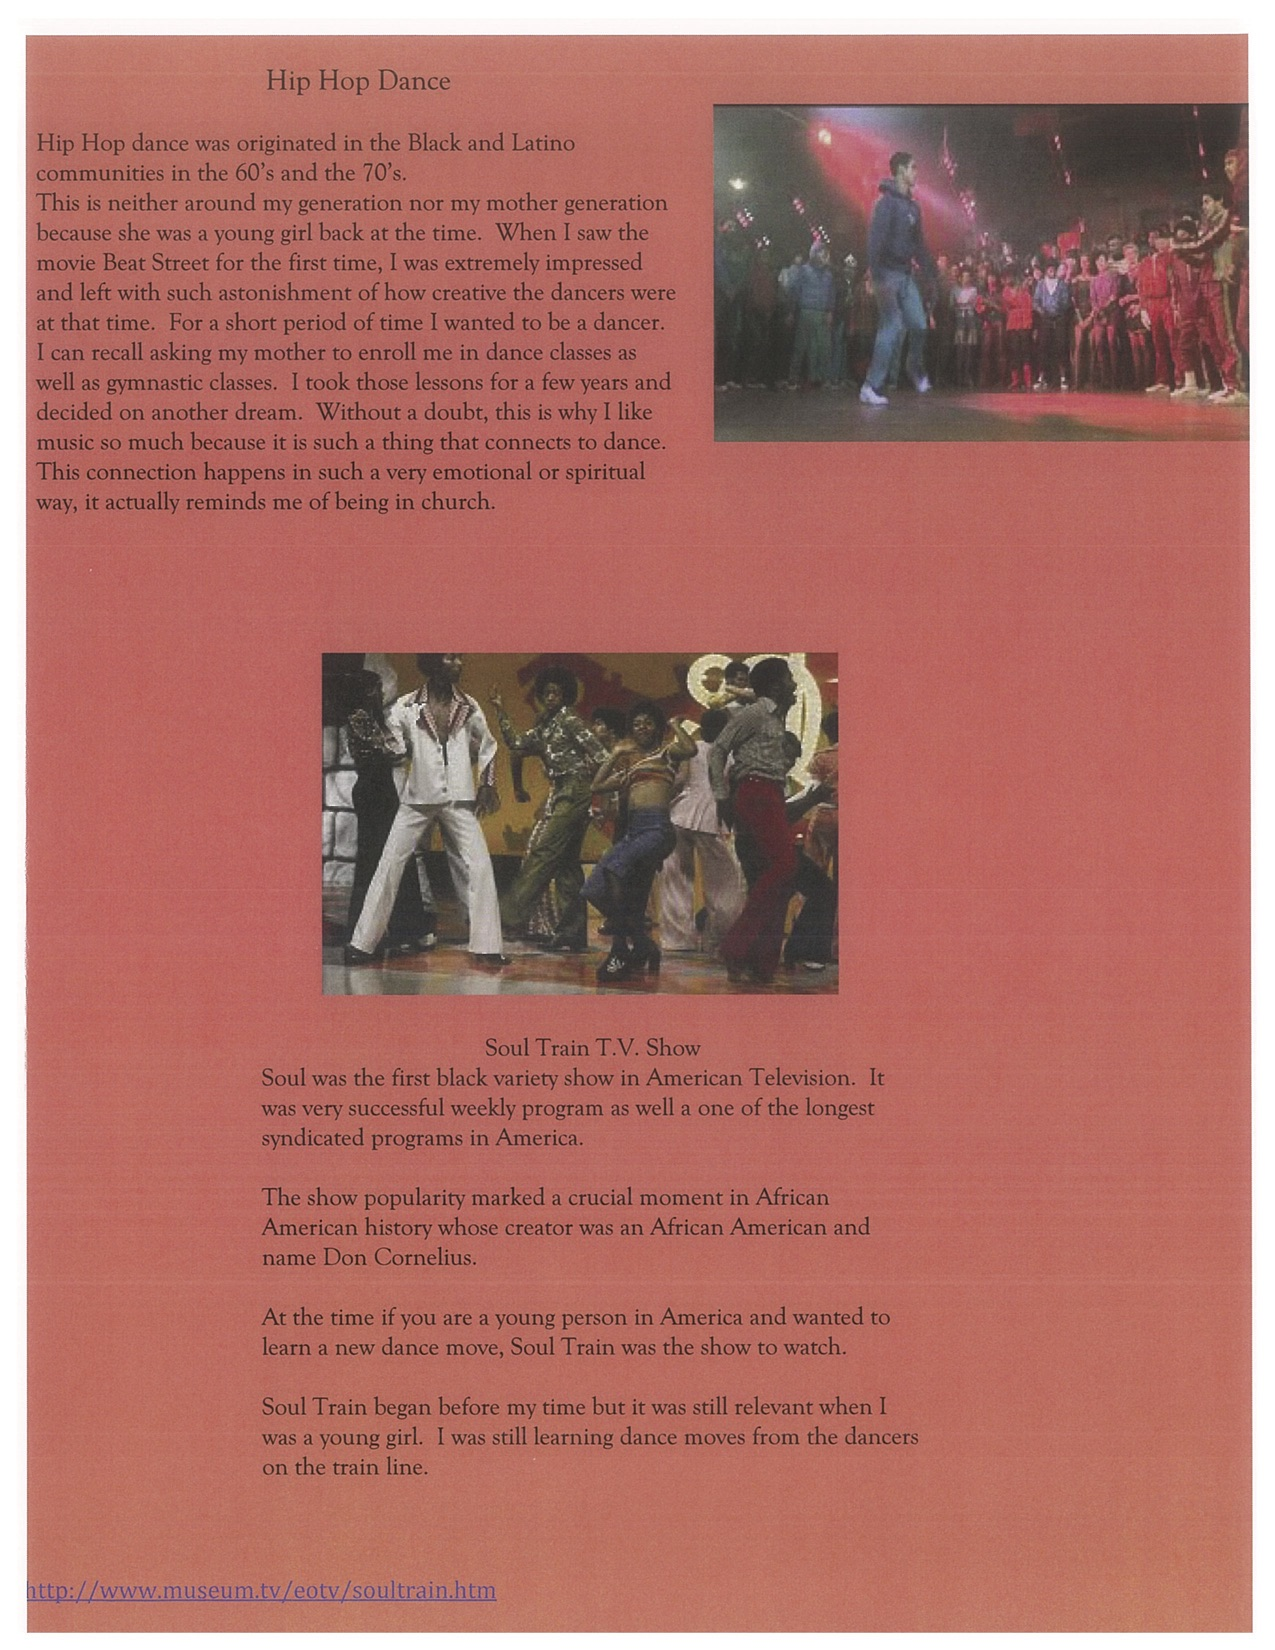 Page 2. shows some details of Hip Hop Dance on some T.V Shows.